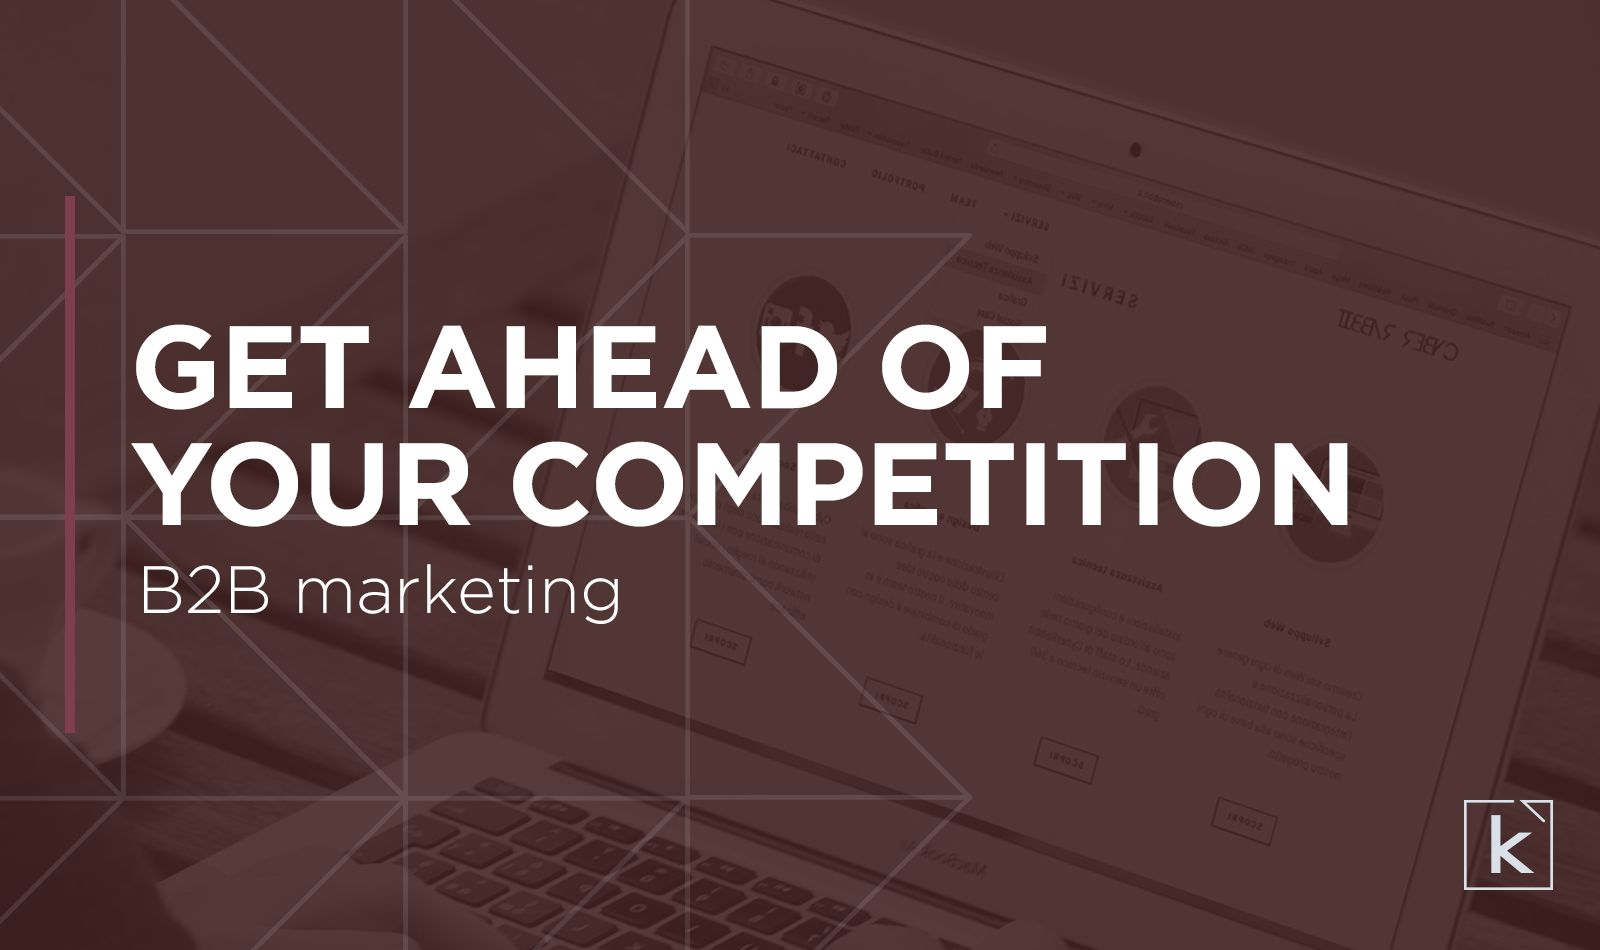 b2b-marketing-get-ahead-of-competition